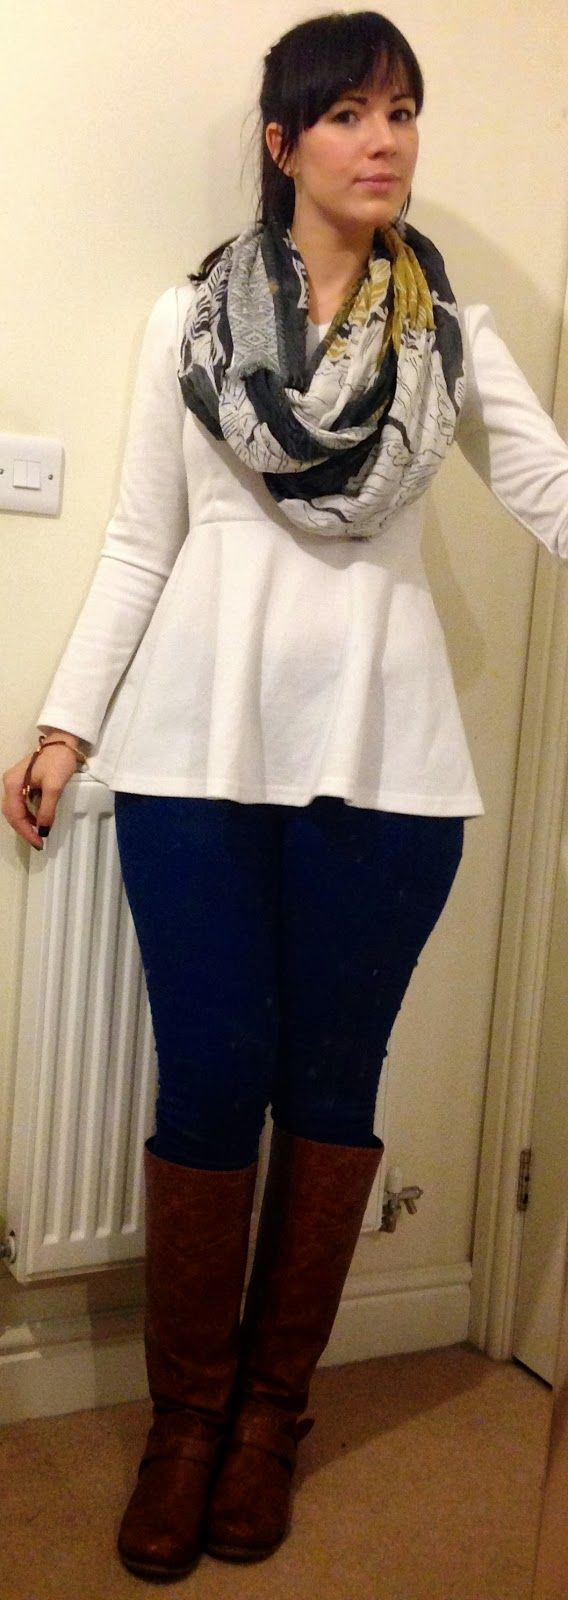 Nail Art and Random Things: Outfit Of The Day... 18th Feb 14